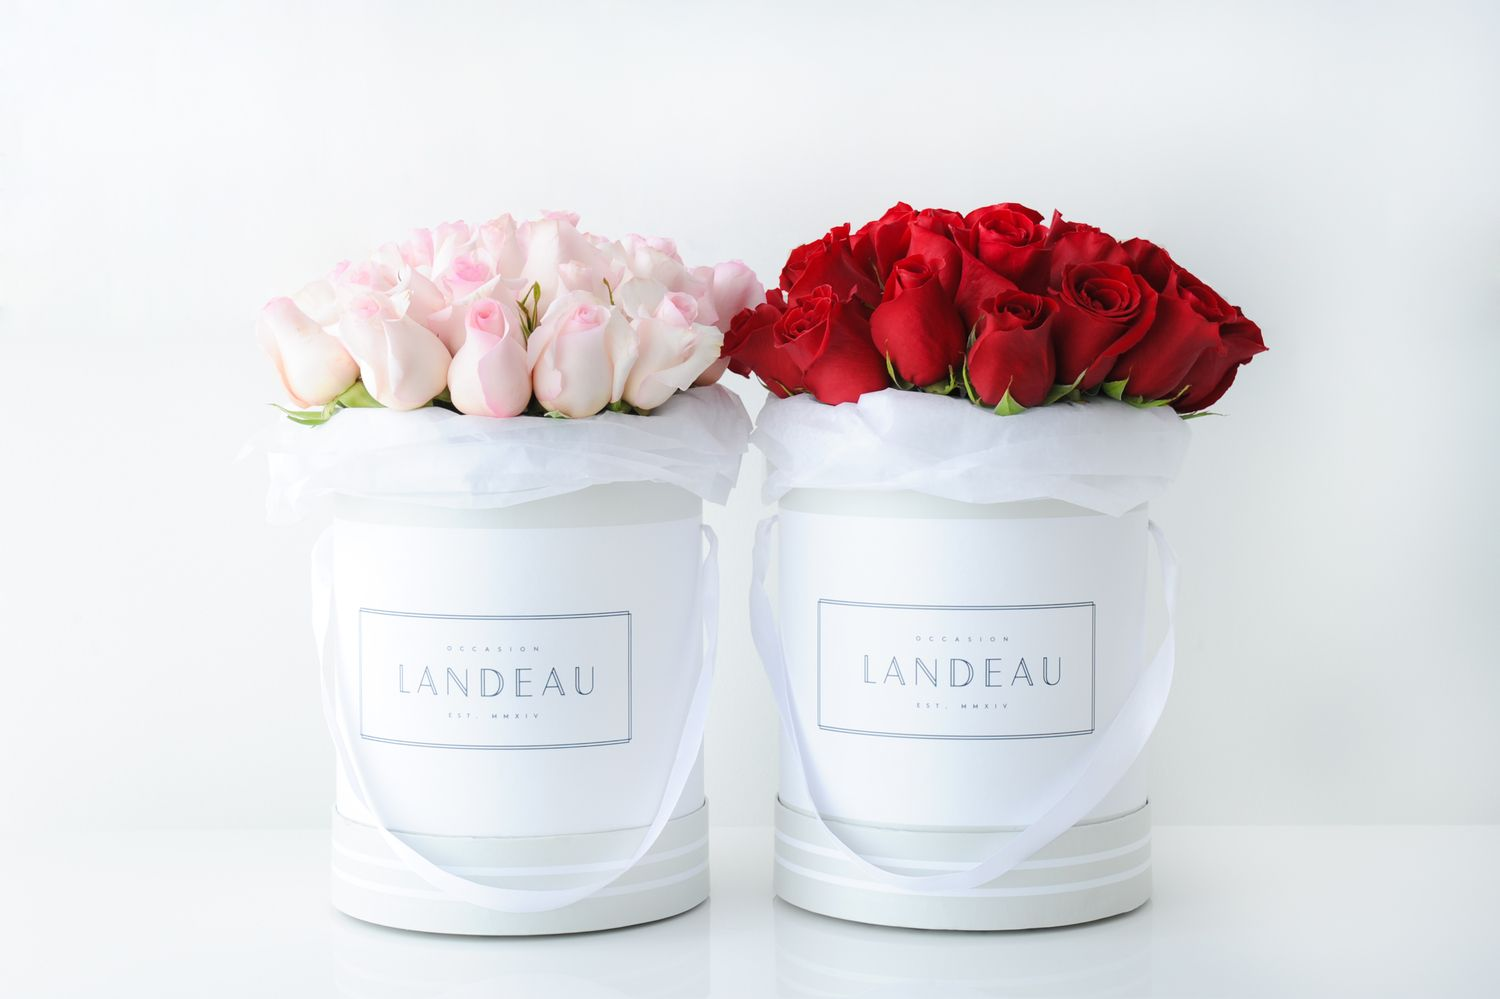 Luxuriously Simple Landeau Luxury Bouquet Rose Beautiful Blooms